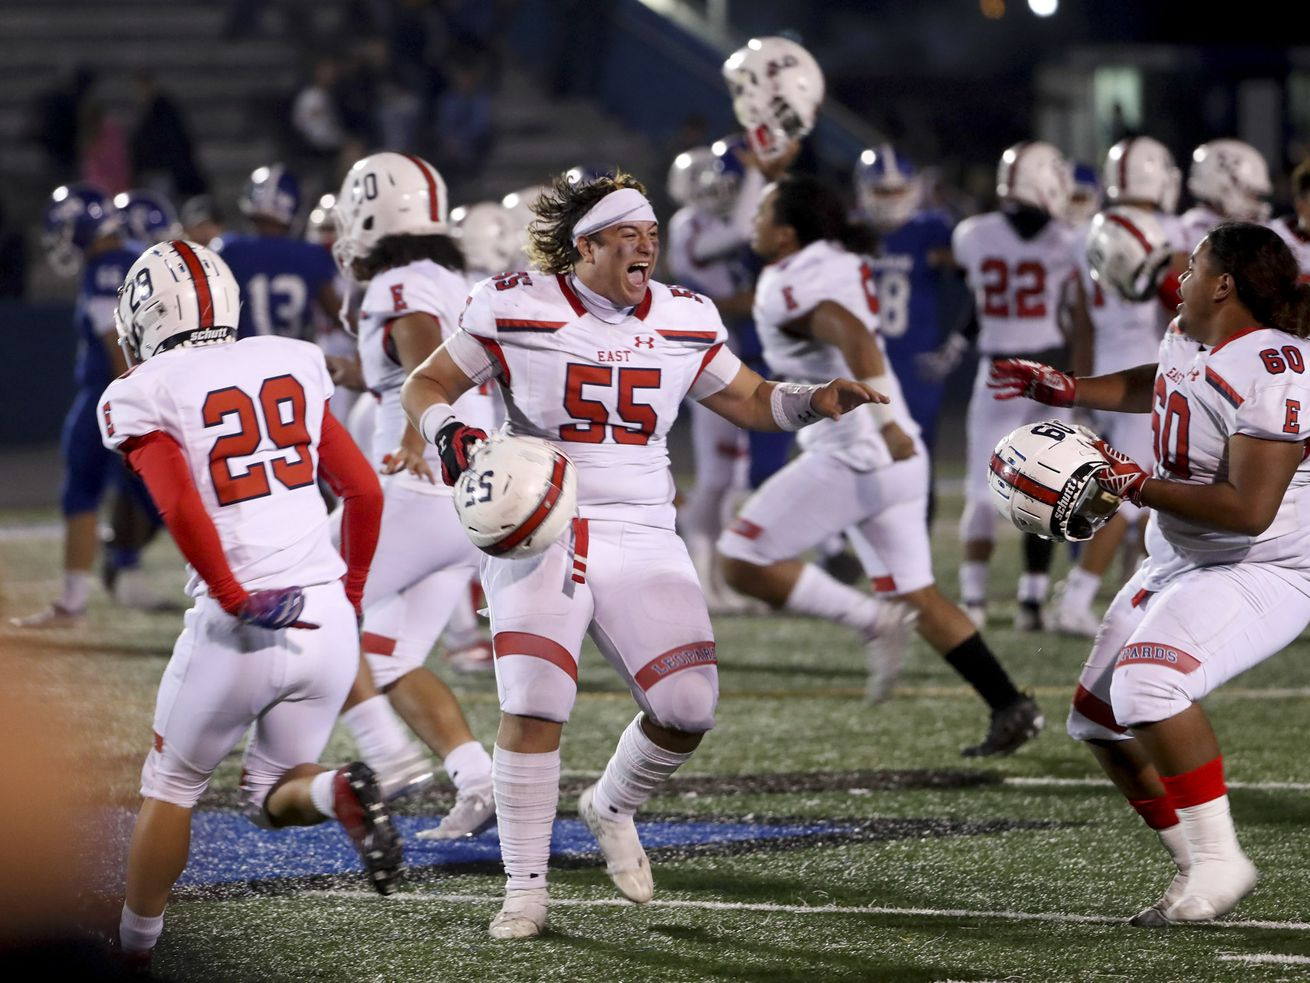 East's Tuiono Tuiaki (55) screams with excitement as the Leopards storm the field after defeating Bingham in the 6A football quarterfinal game at Bingham High School in South Jordan on Friday, Nov. 8, 2019.